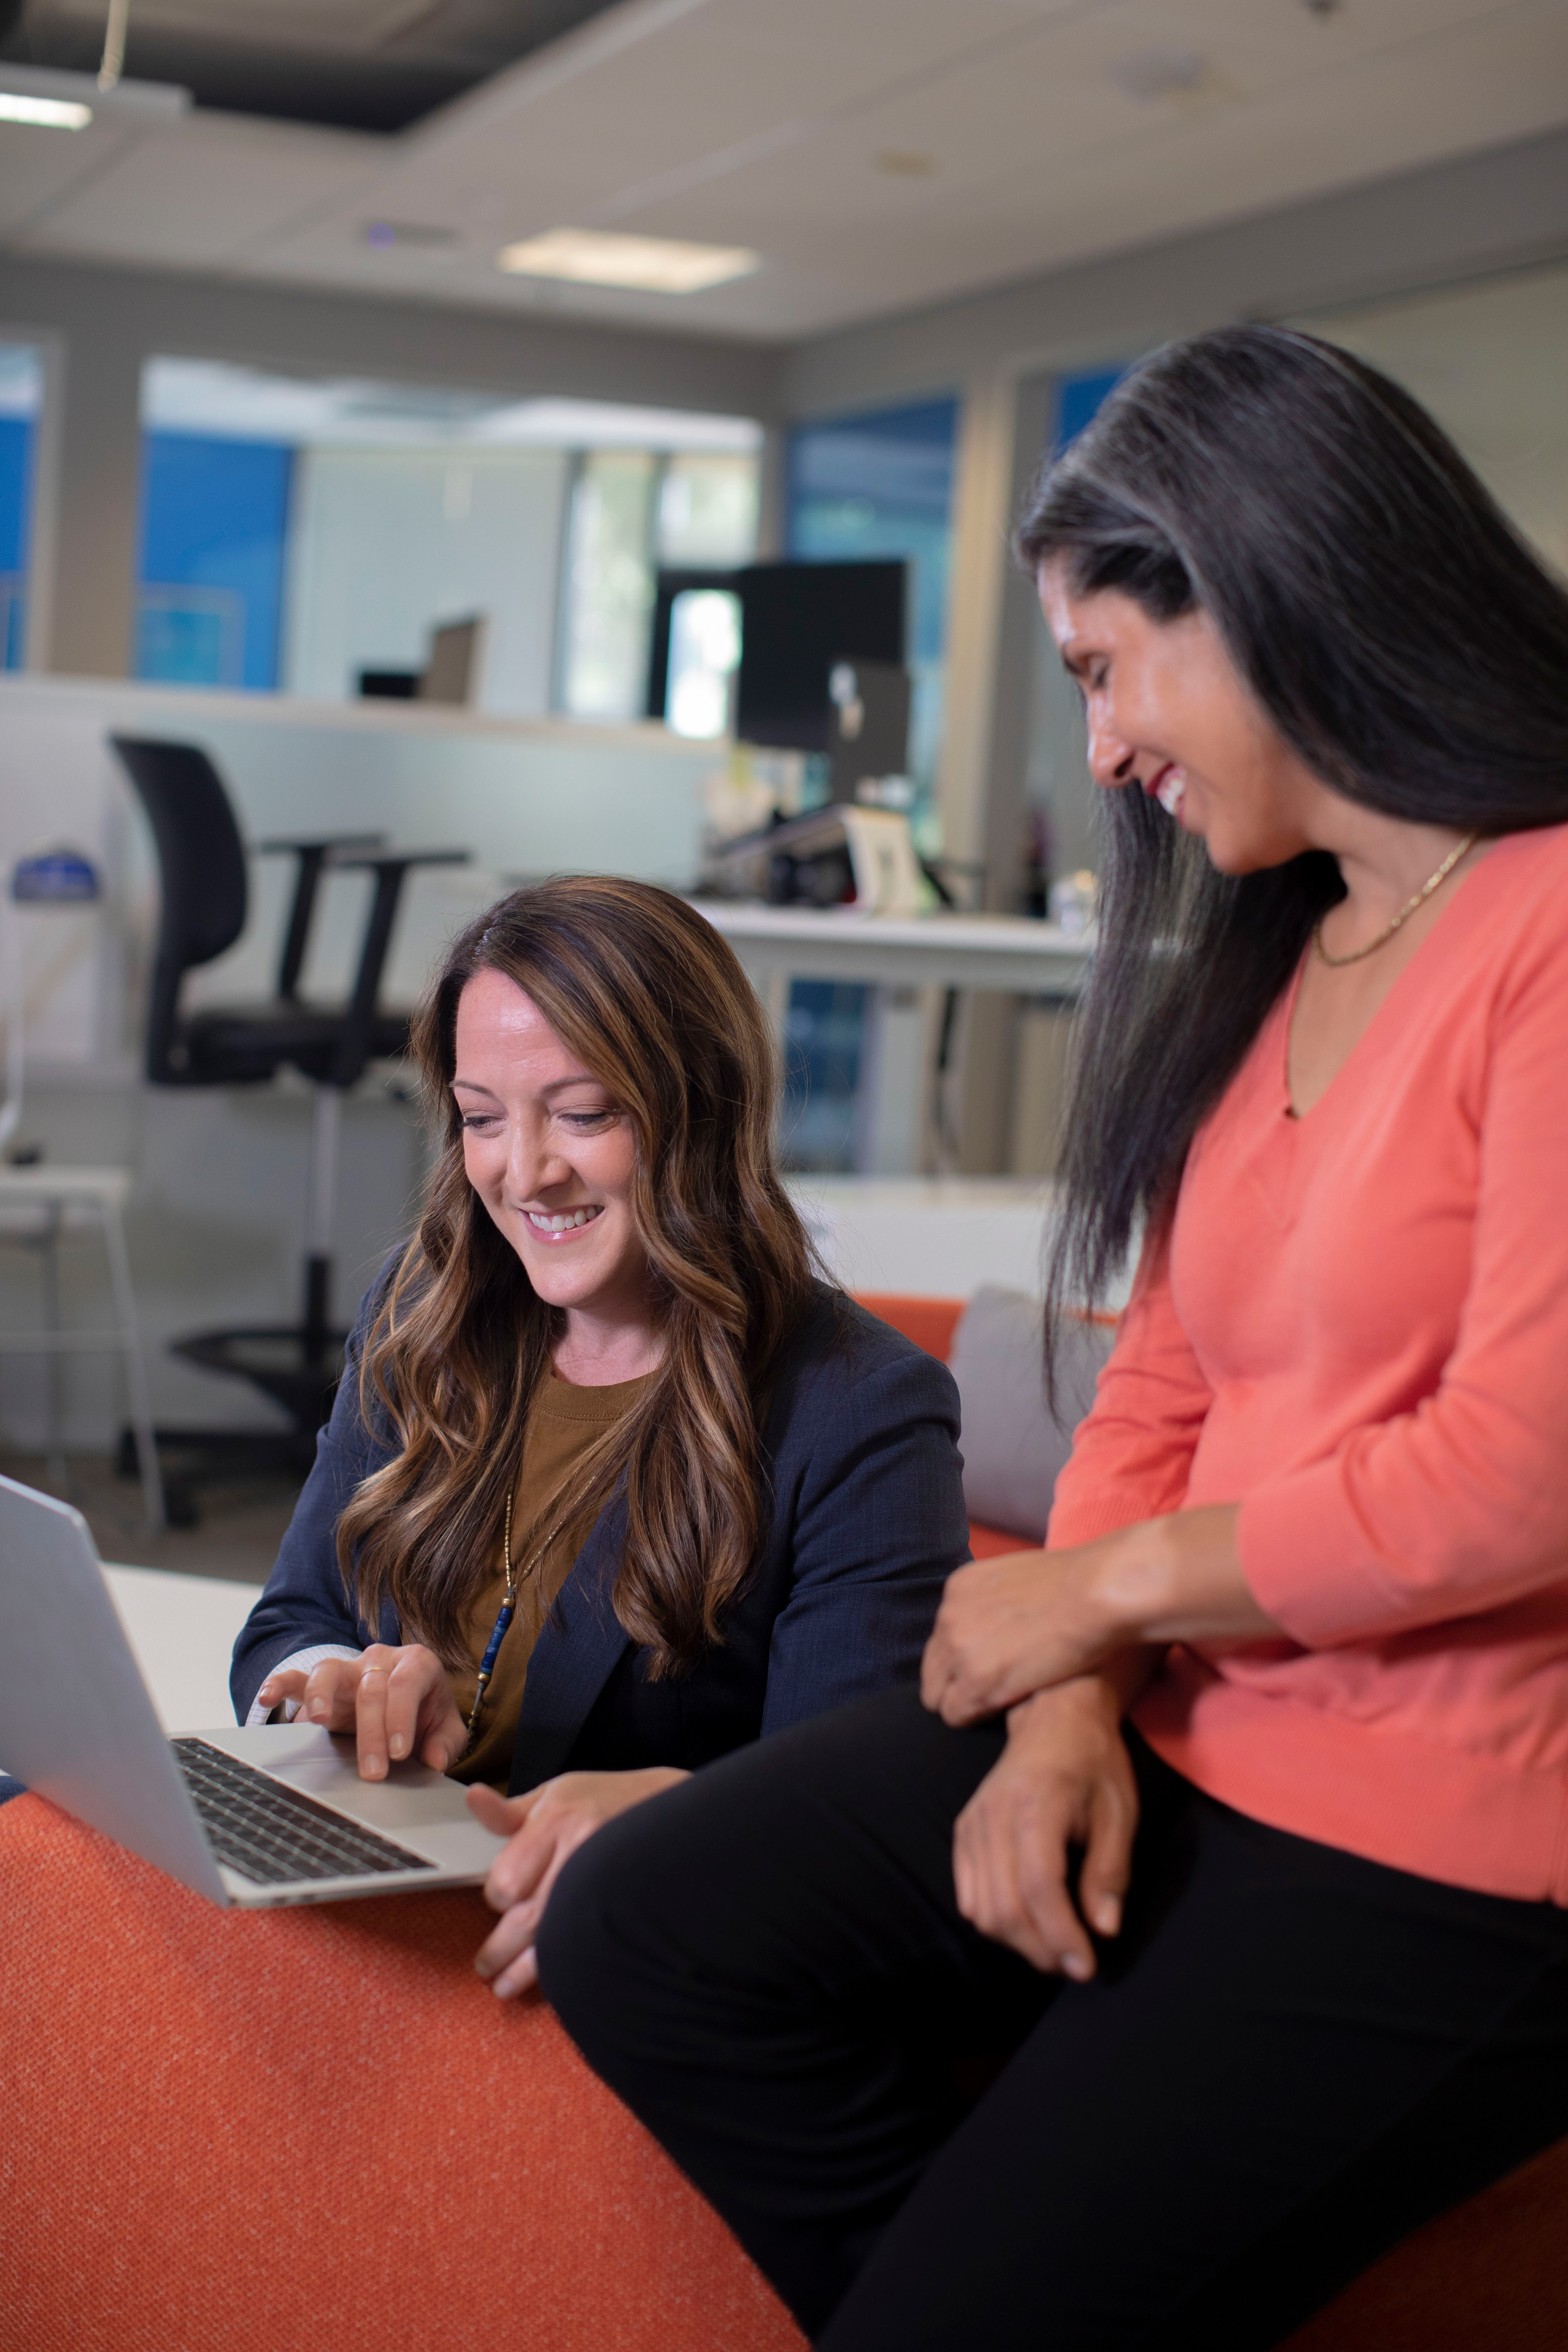 Co-workers Laughing from hire